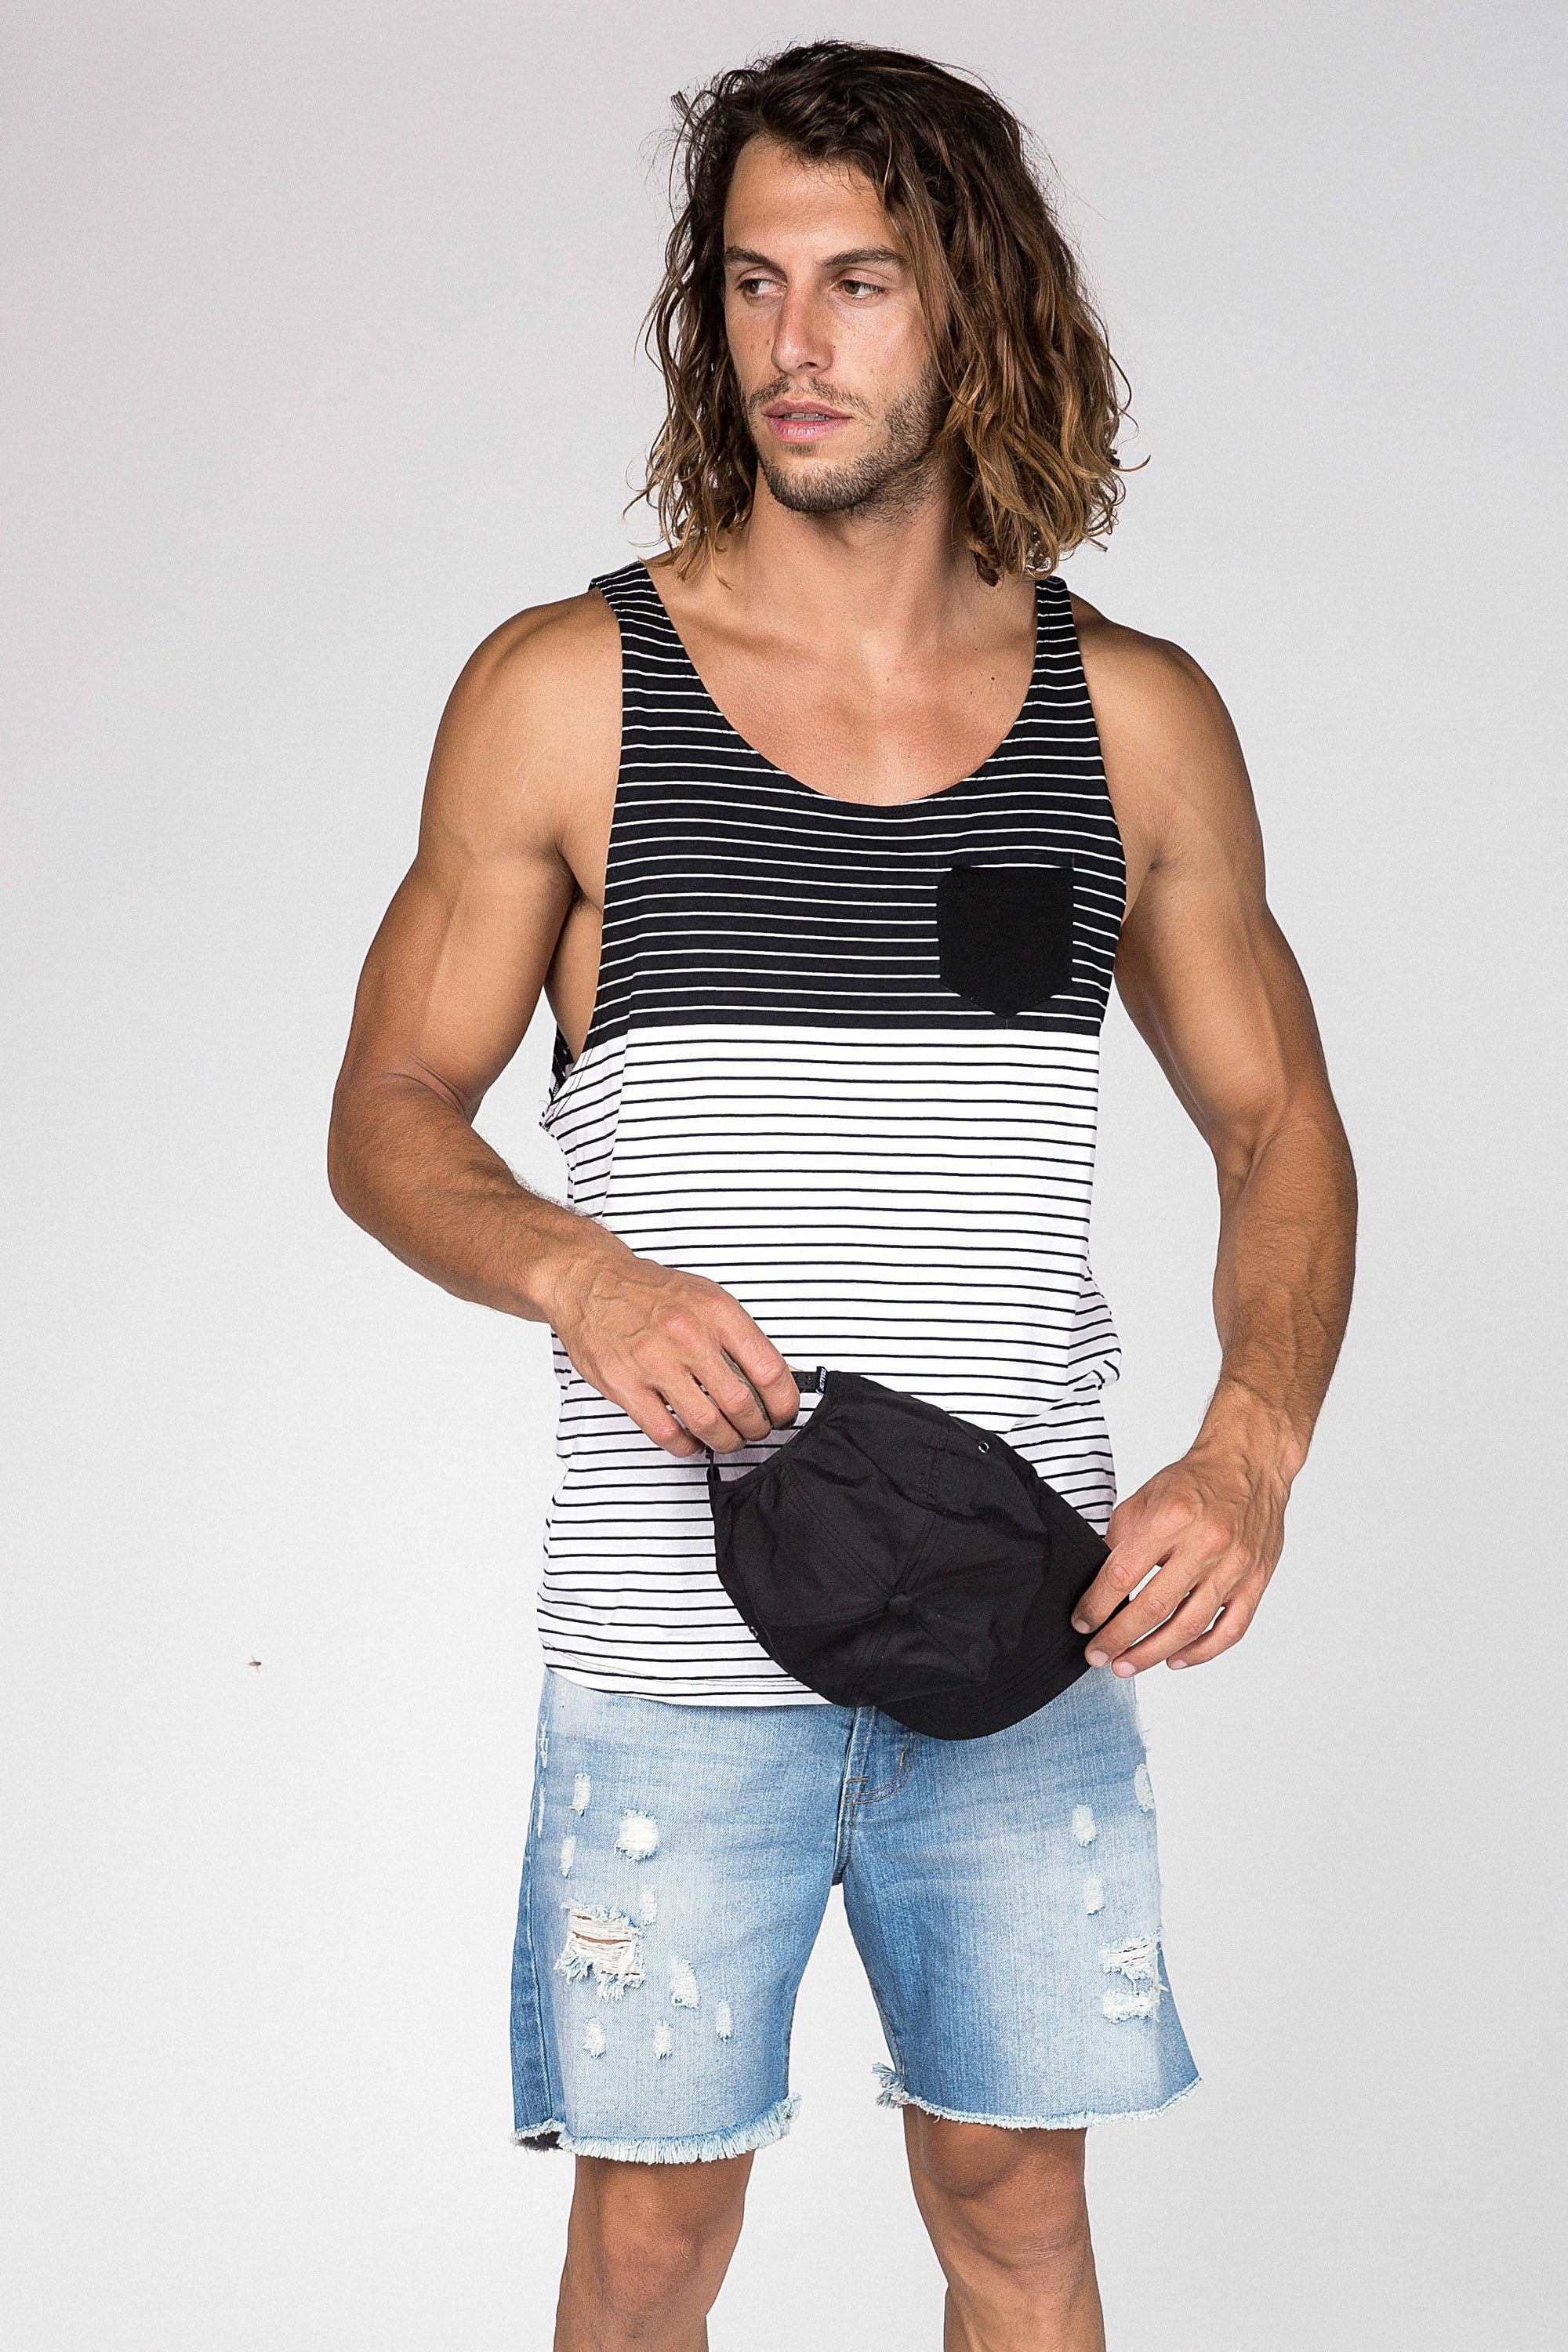 Invert Sing - Mens Muscle Tank - LOST IN PARADISE